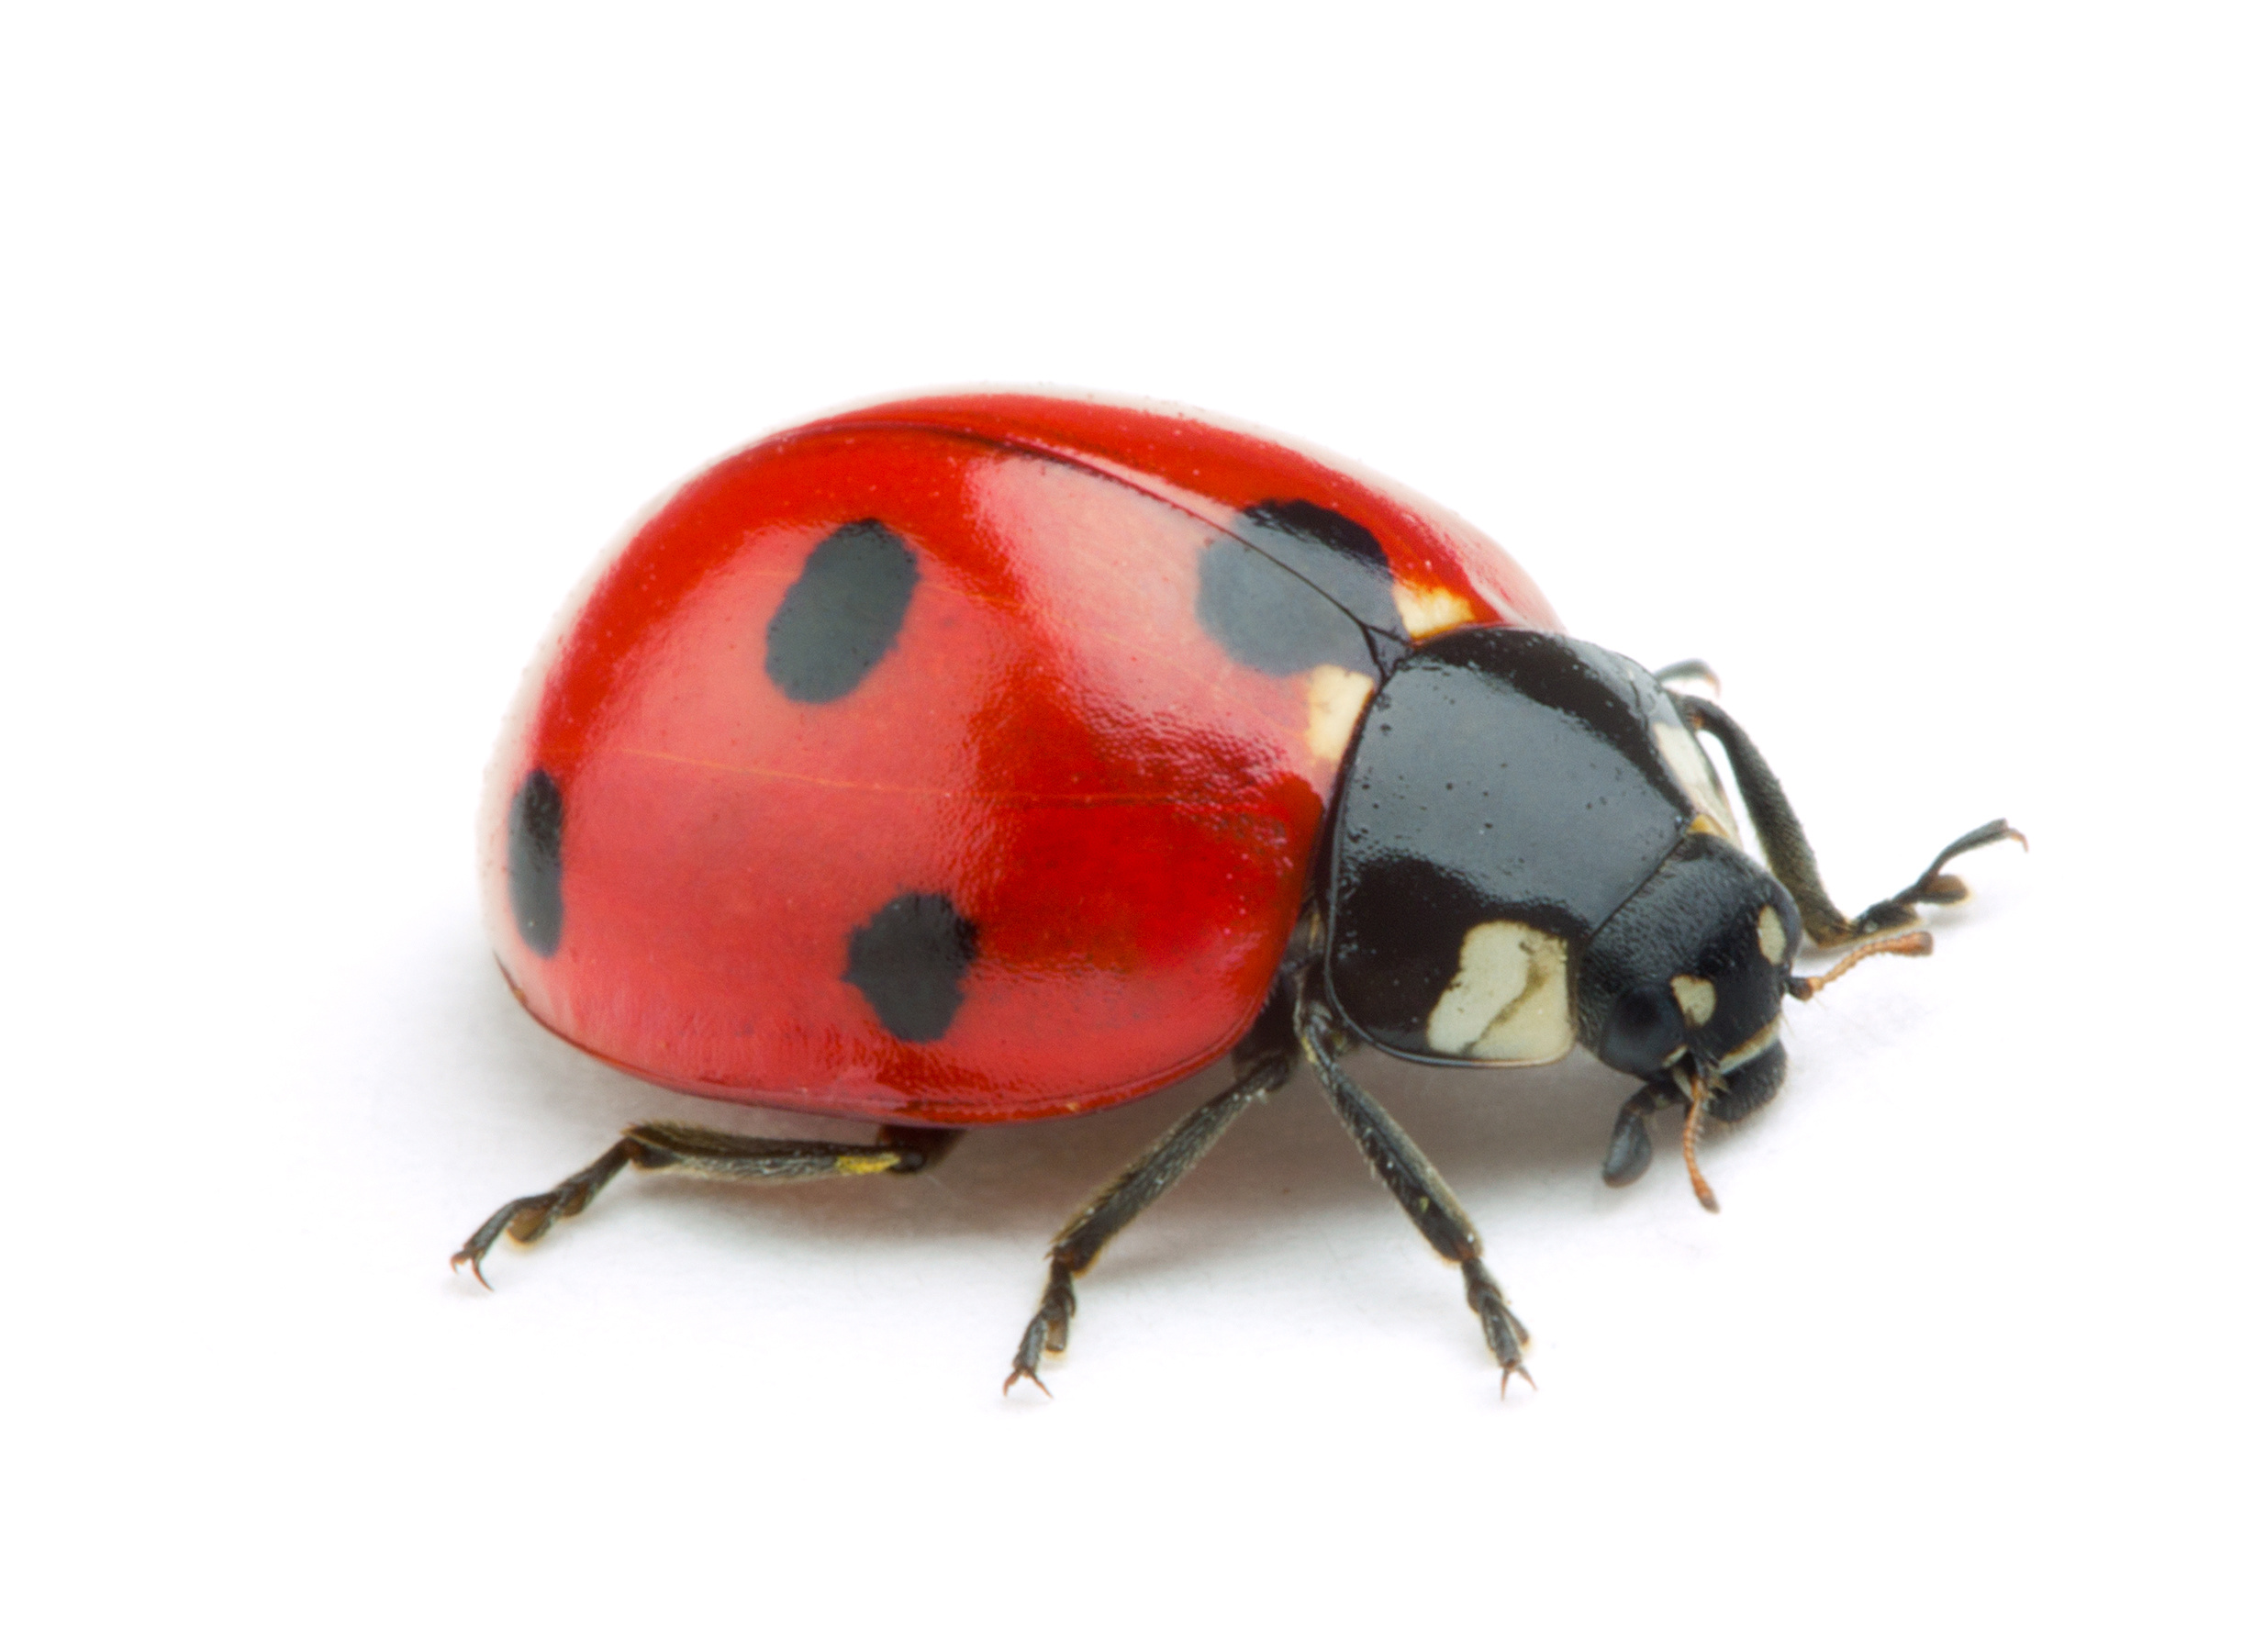 Why Are Ladybugs In My House During The Winter